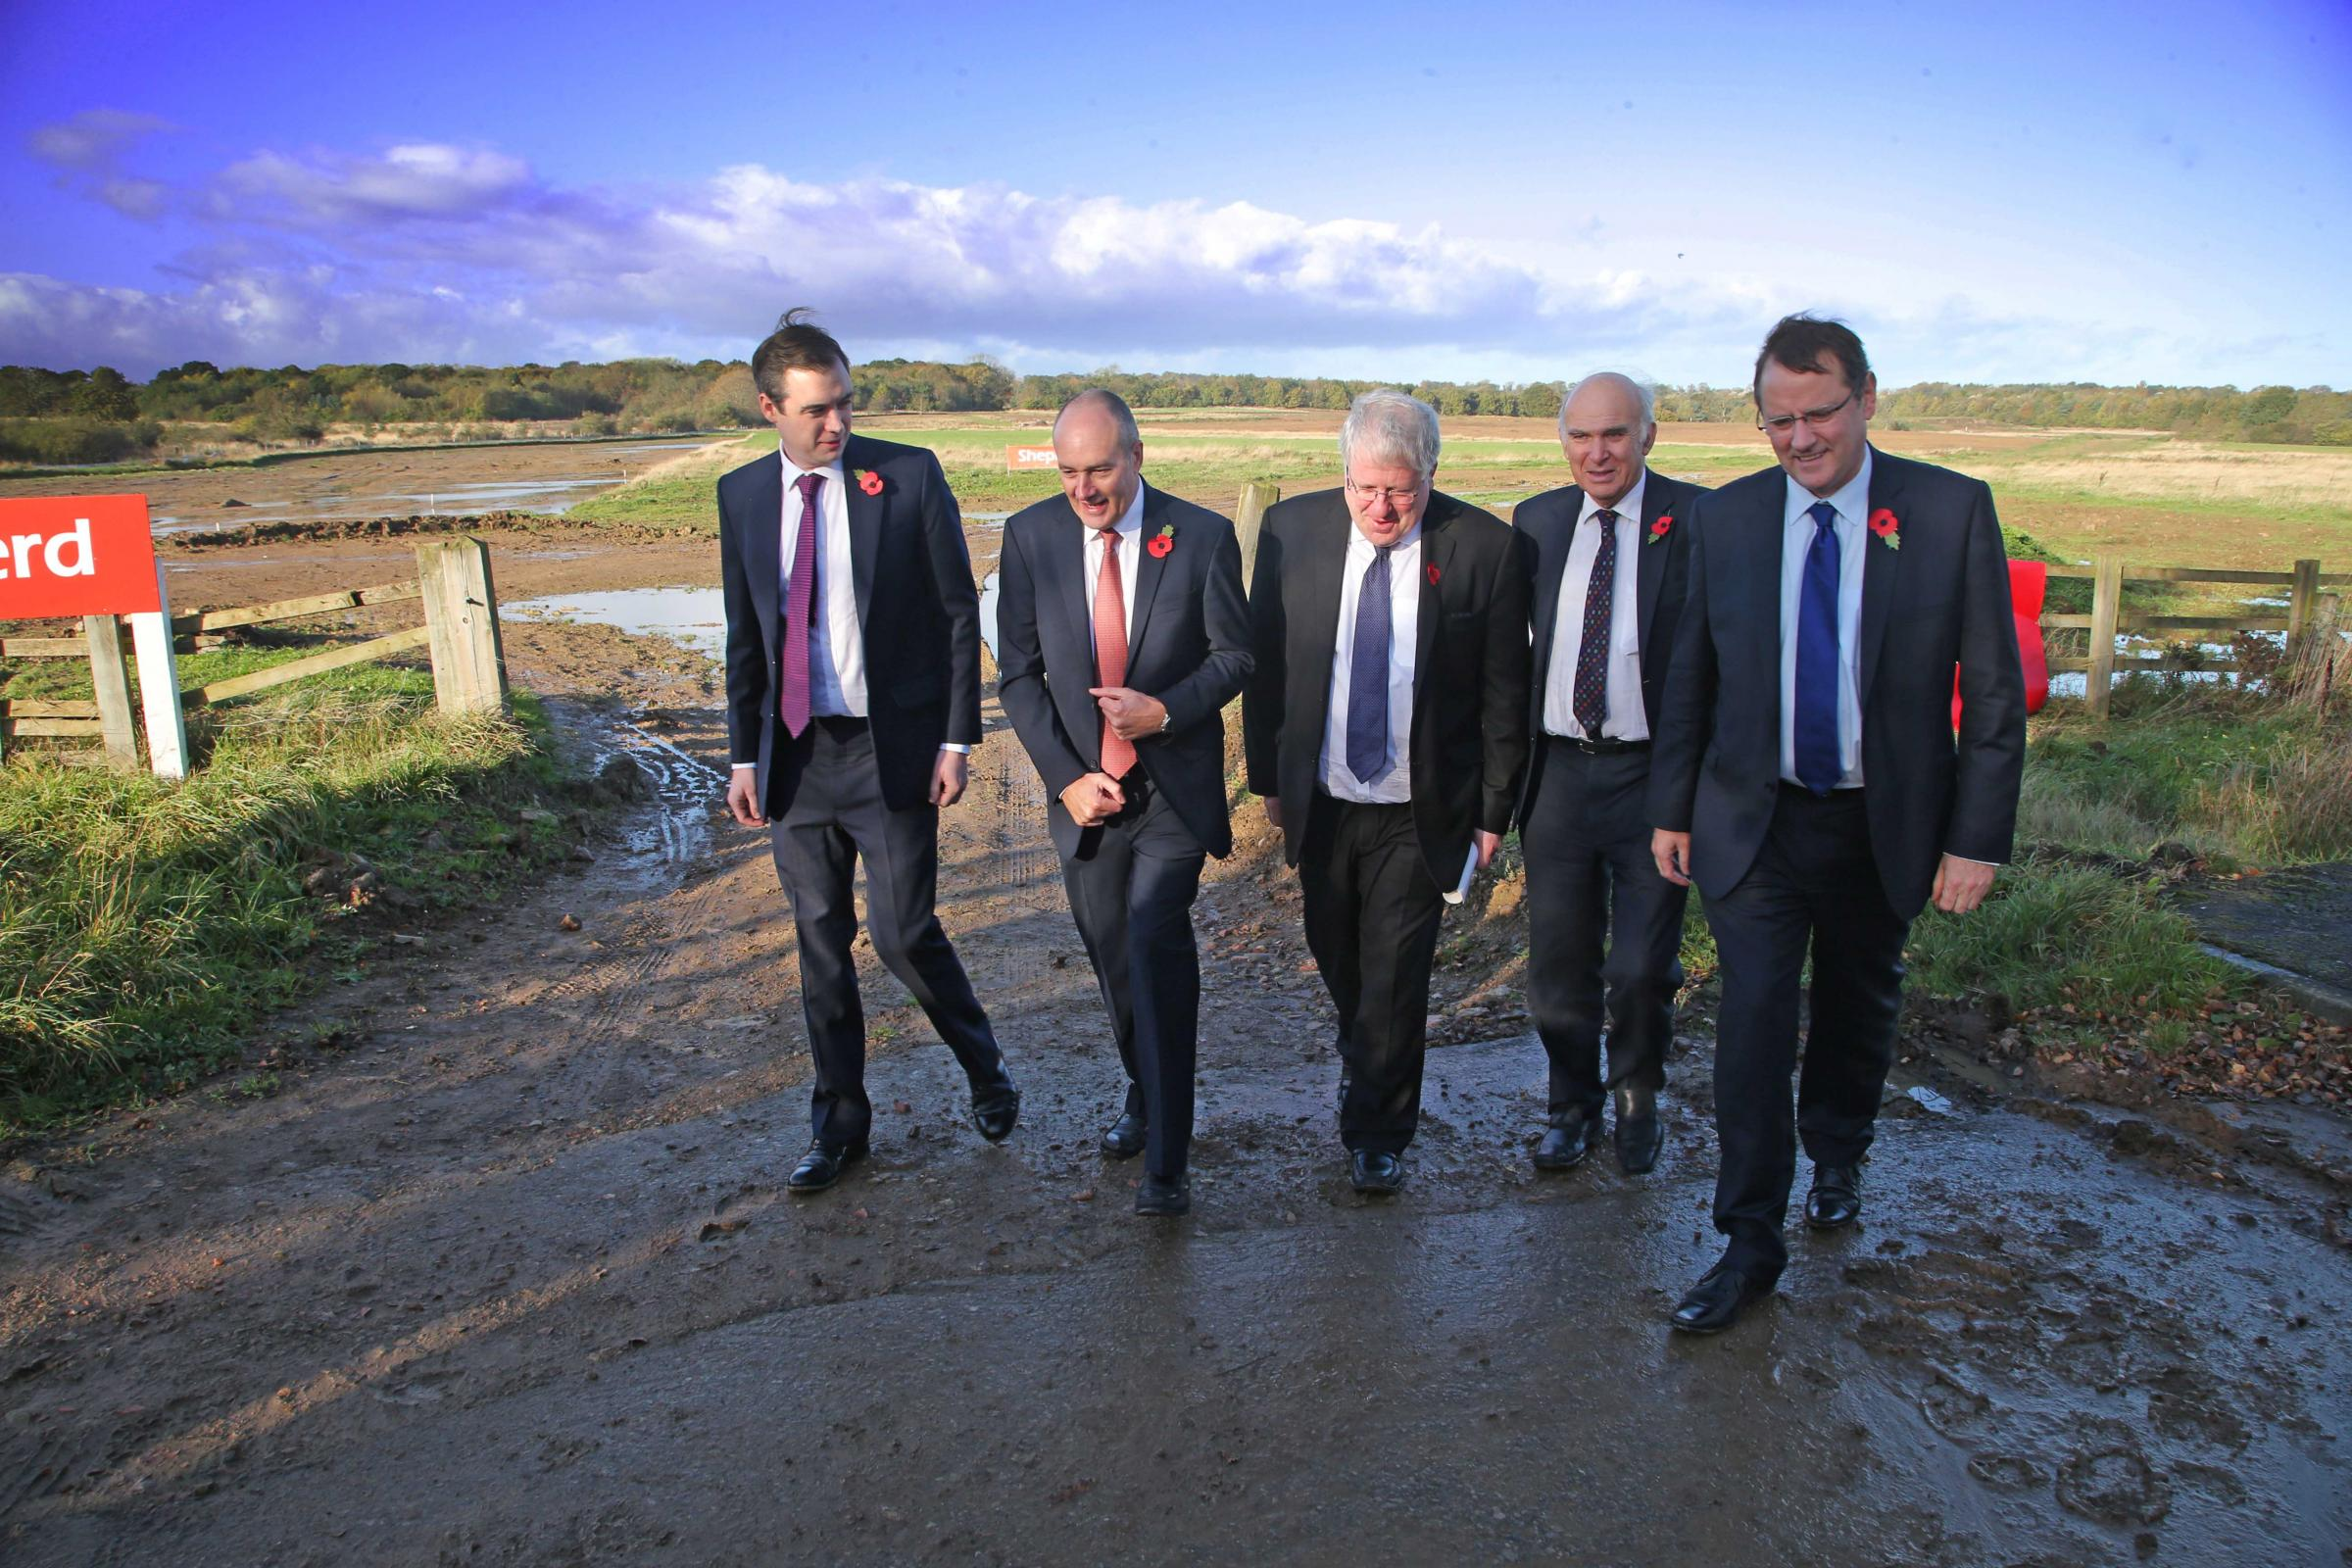 Phil Wilson, far right, pictured at the site of